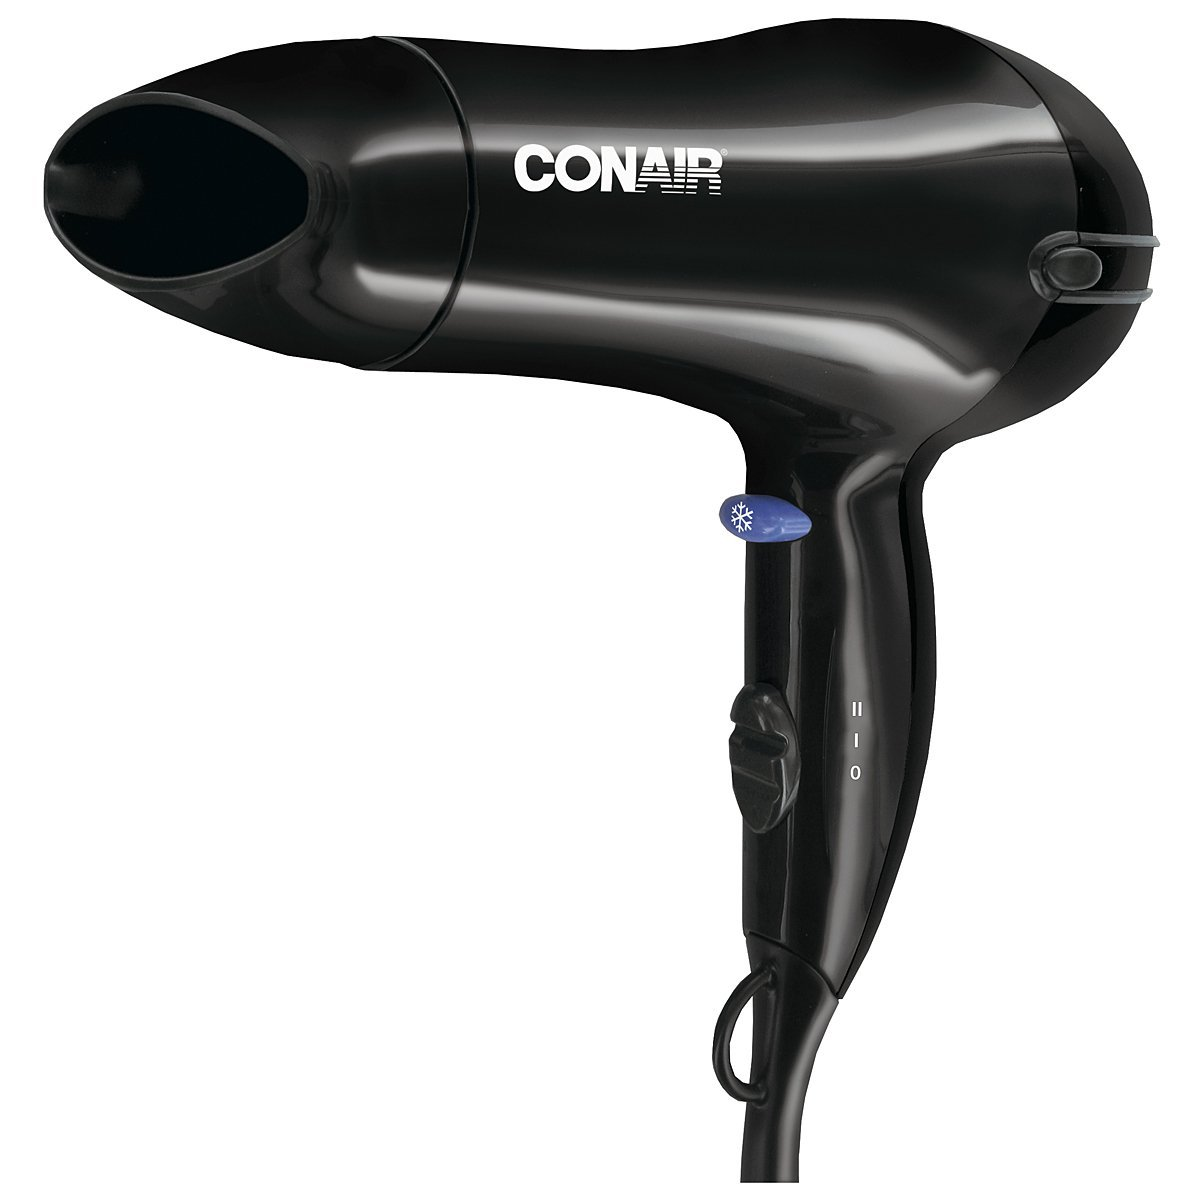 Nexday Supply 248rnc Conair Mid Size Hair Dryer 1875